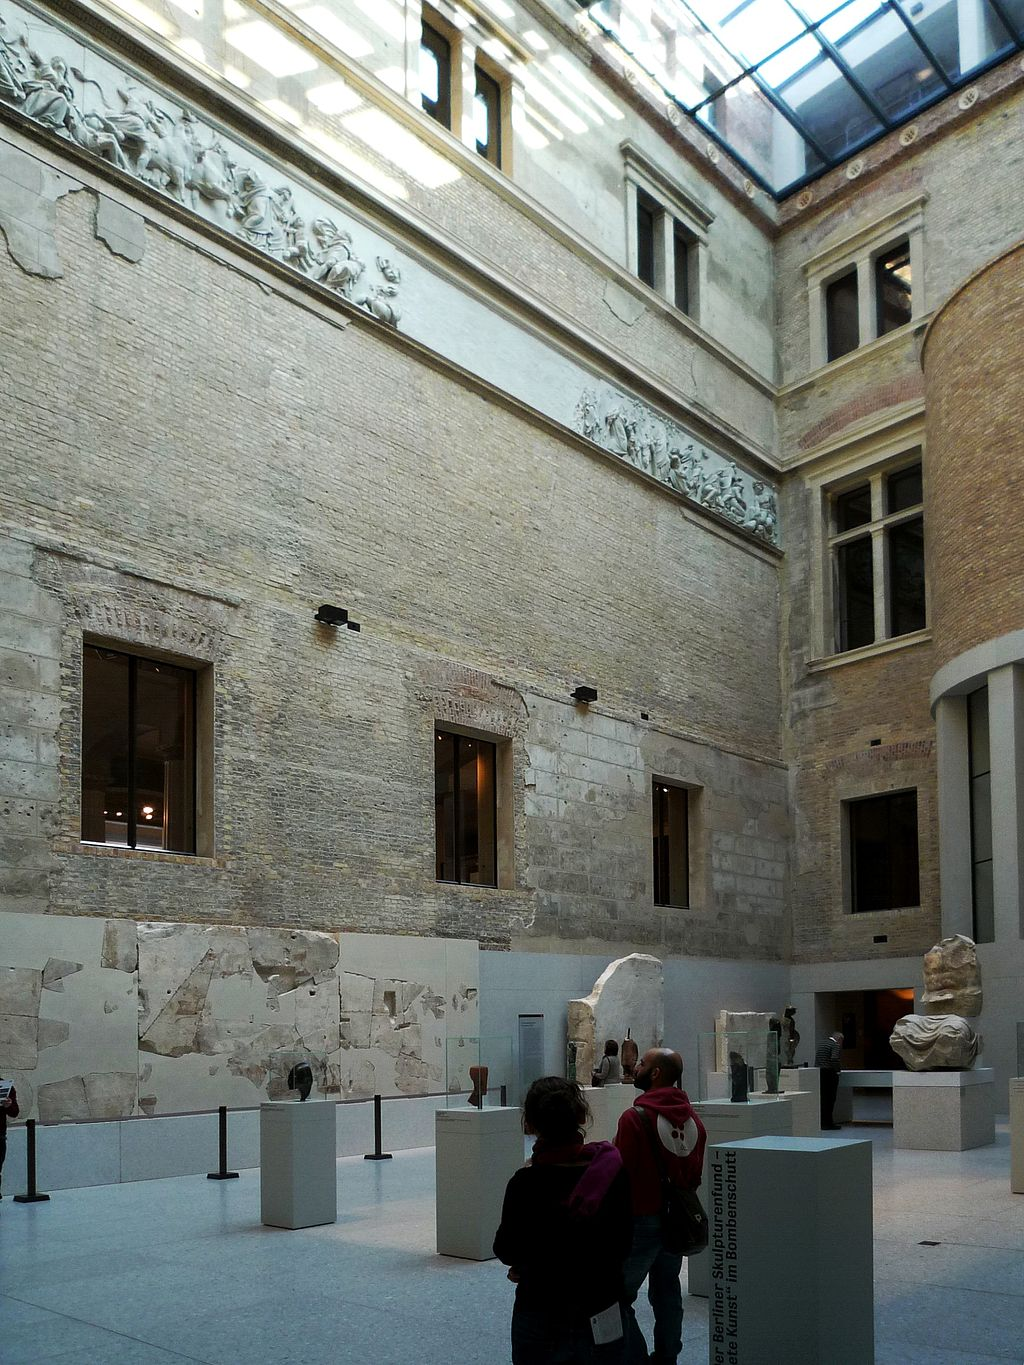 Highlights of the Neues Museum